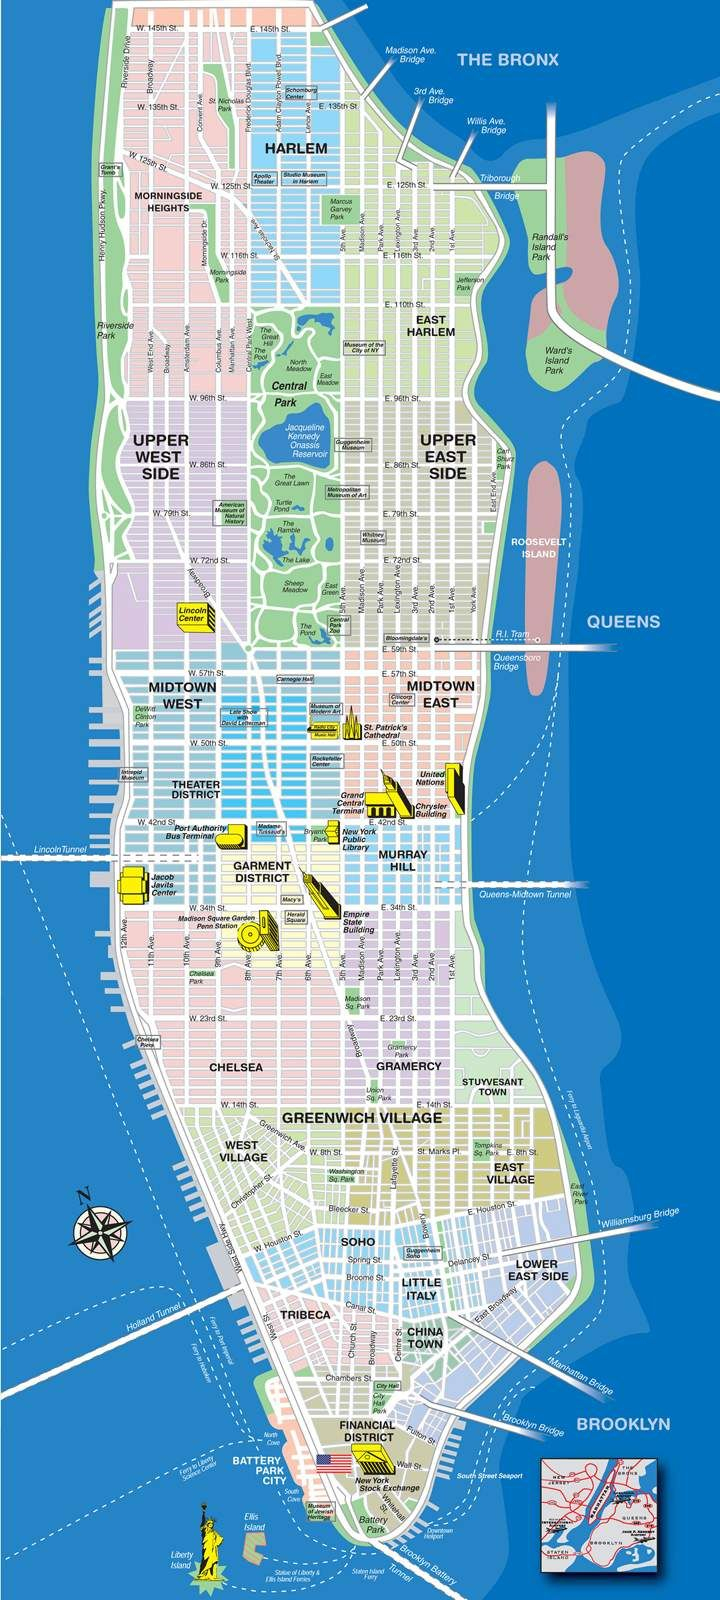 High-Resolution Map Of Manhattan For Print Or Download | Usa Travel - Printable Street Map Of Manhattan